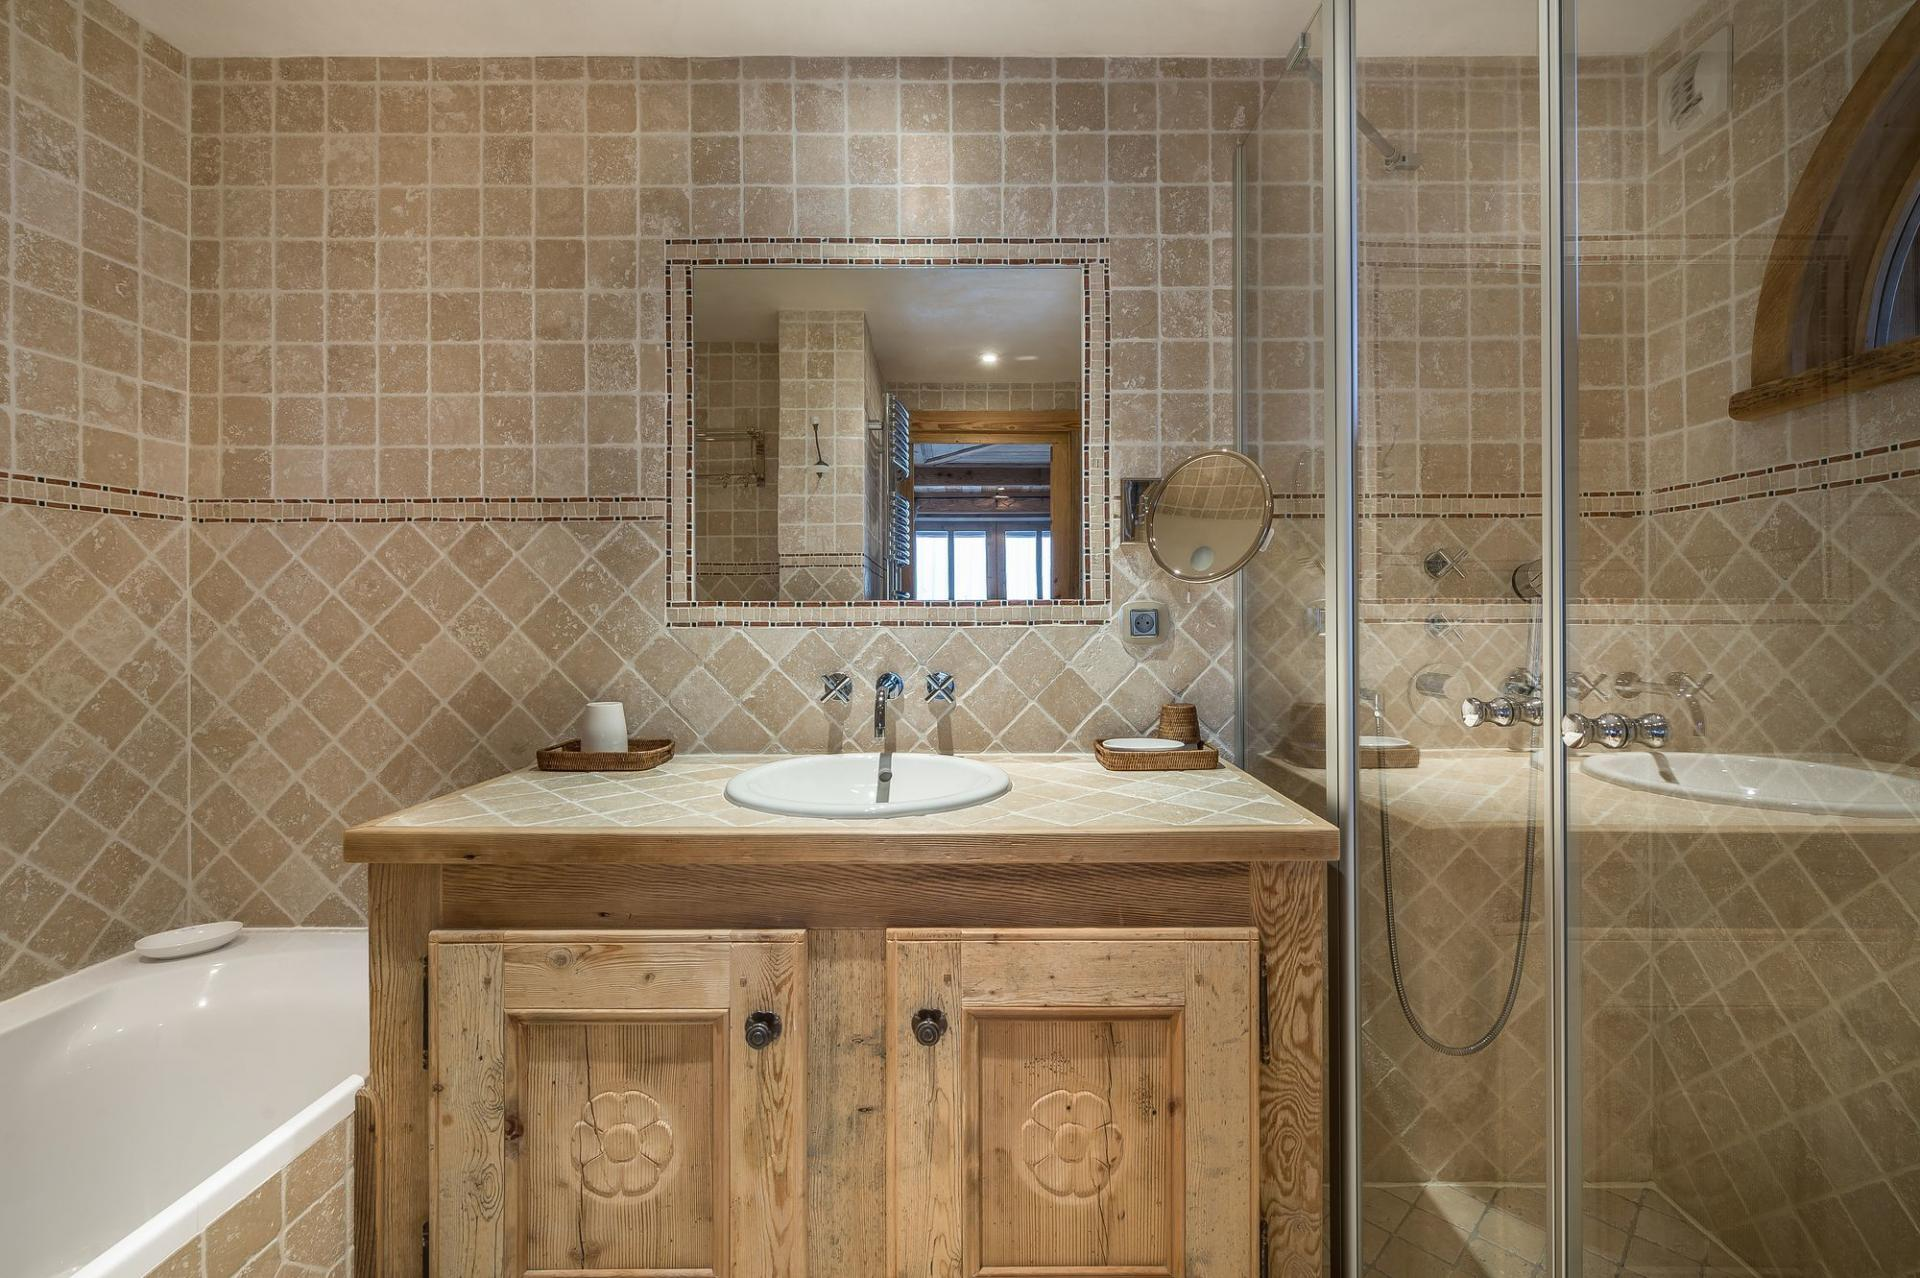 ONE BATHROOM IN A CHALET RENTAL IN COURCHEVEL 1850